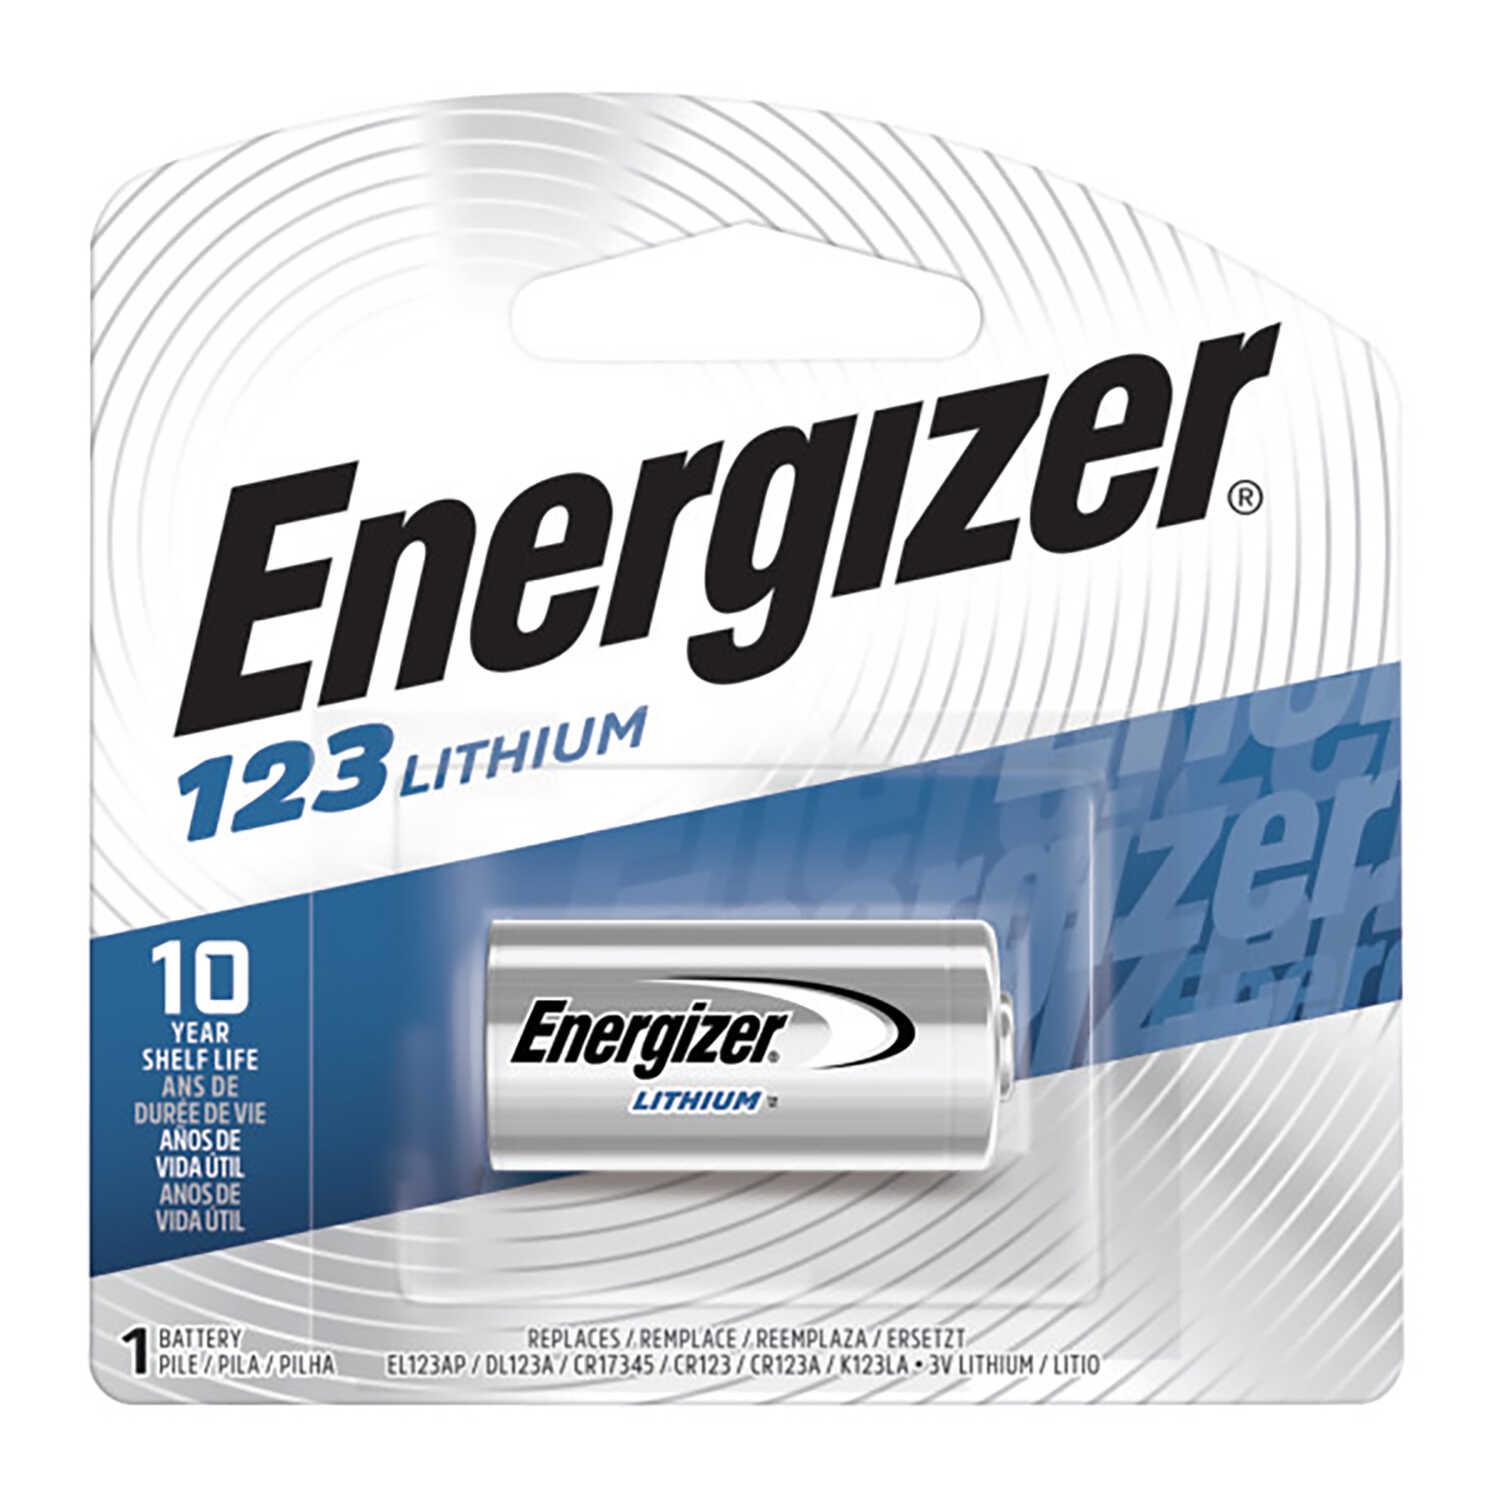 Energizer  Lithium  123  3 volt Camera Battery  1 pk